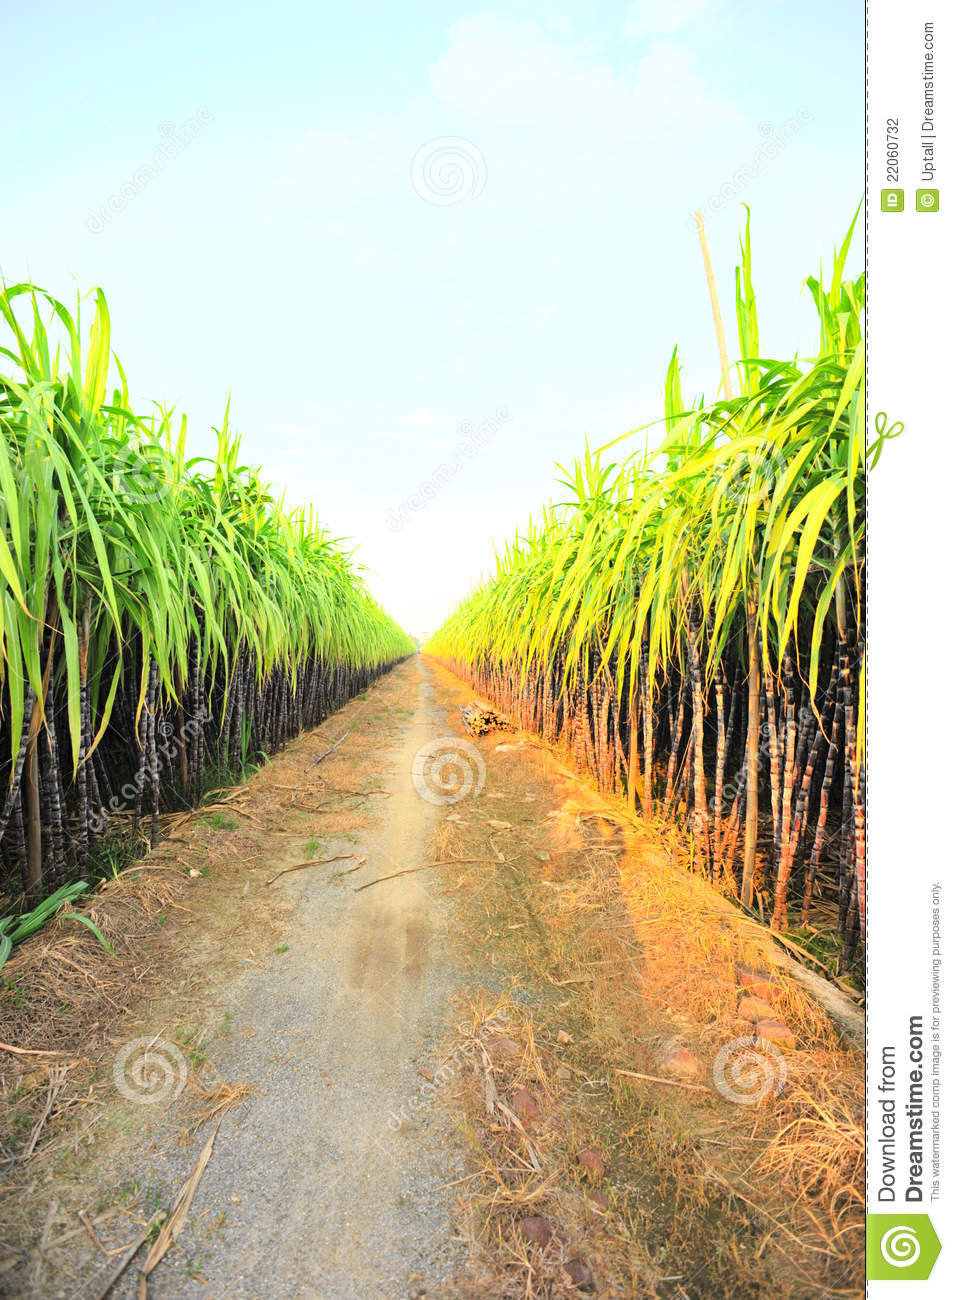 Black sugarcane farm